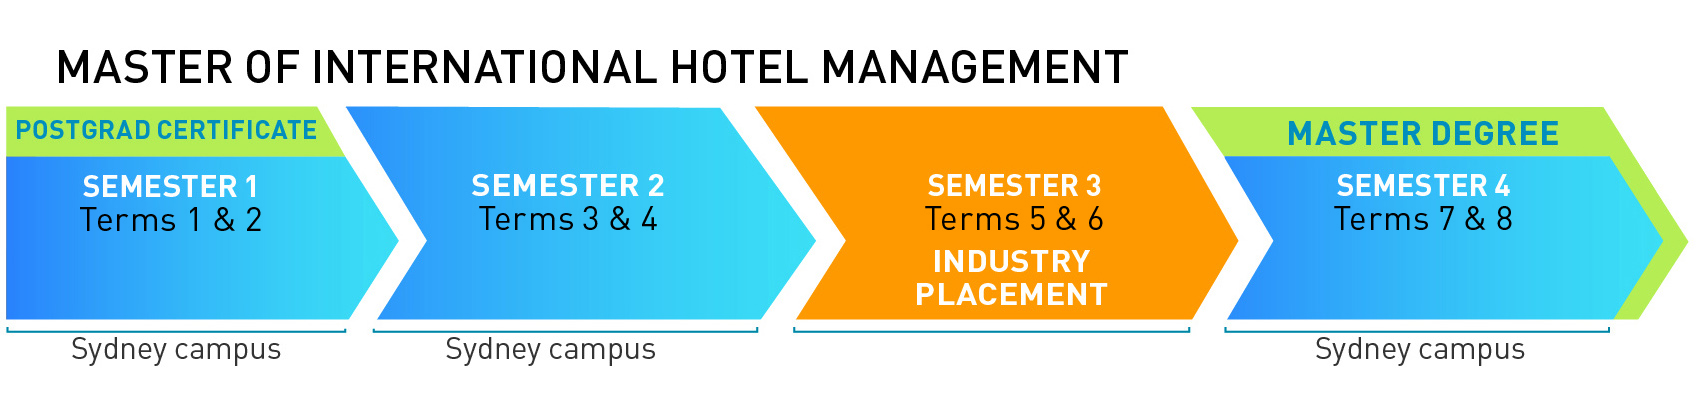 Course Outline for Master Degree in International Hotel Management